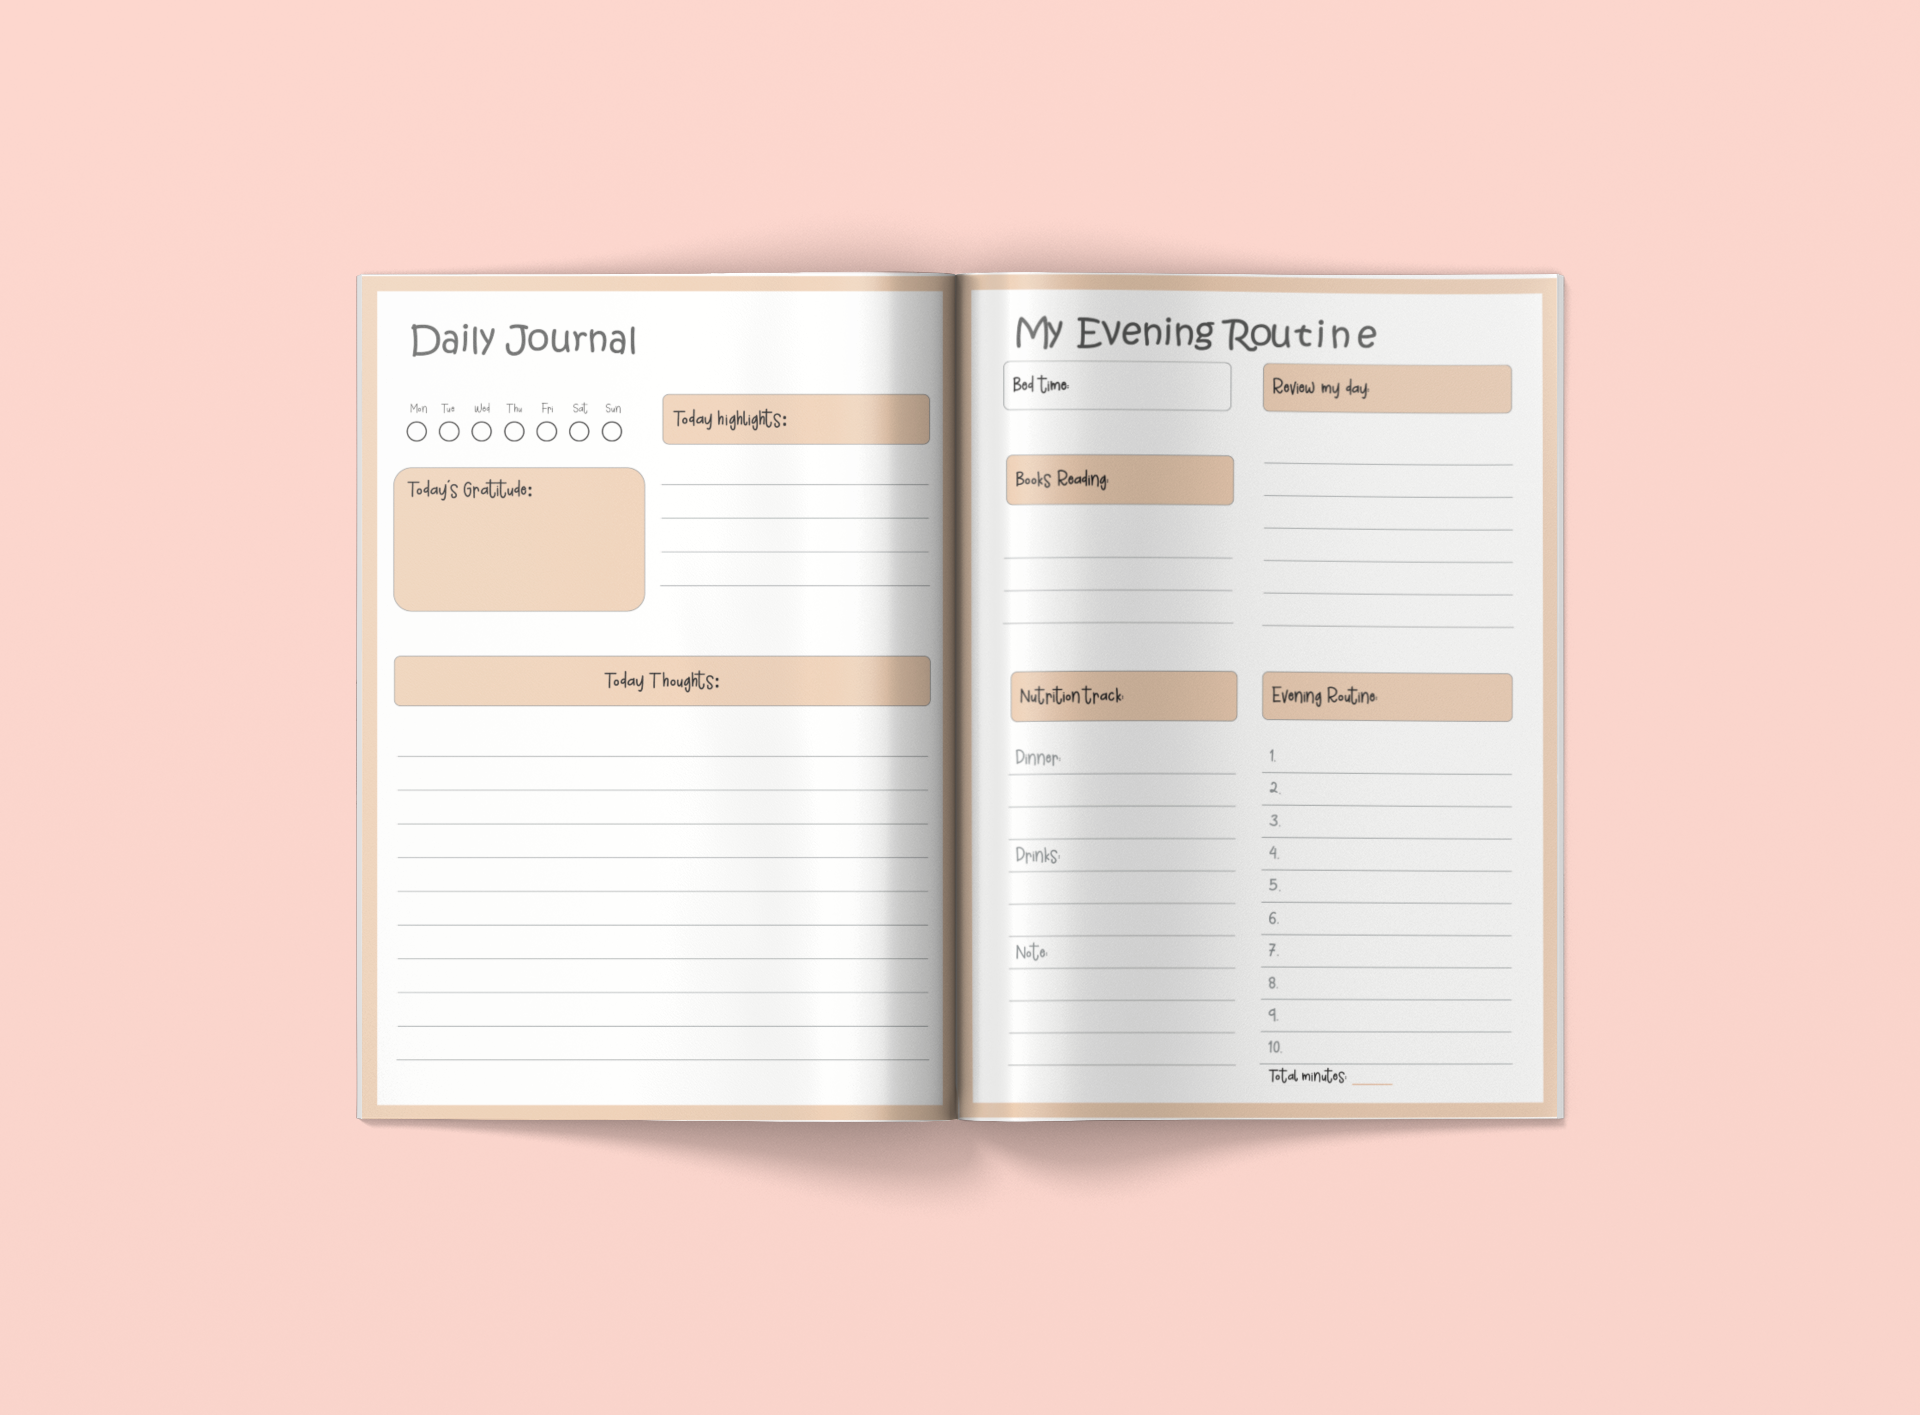 My Routine Planner - Using For Improving Your Daily Productivity, Time Management